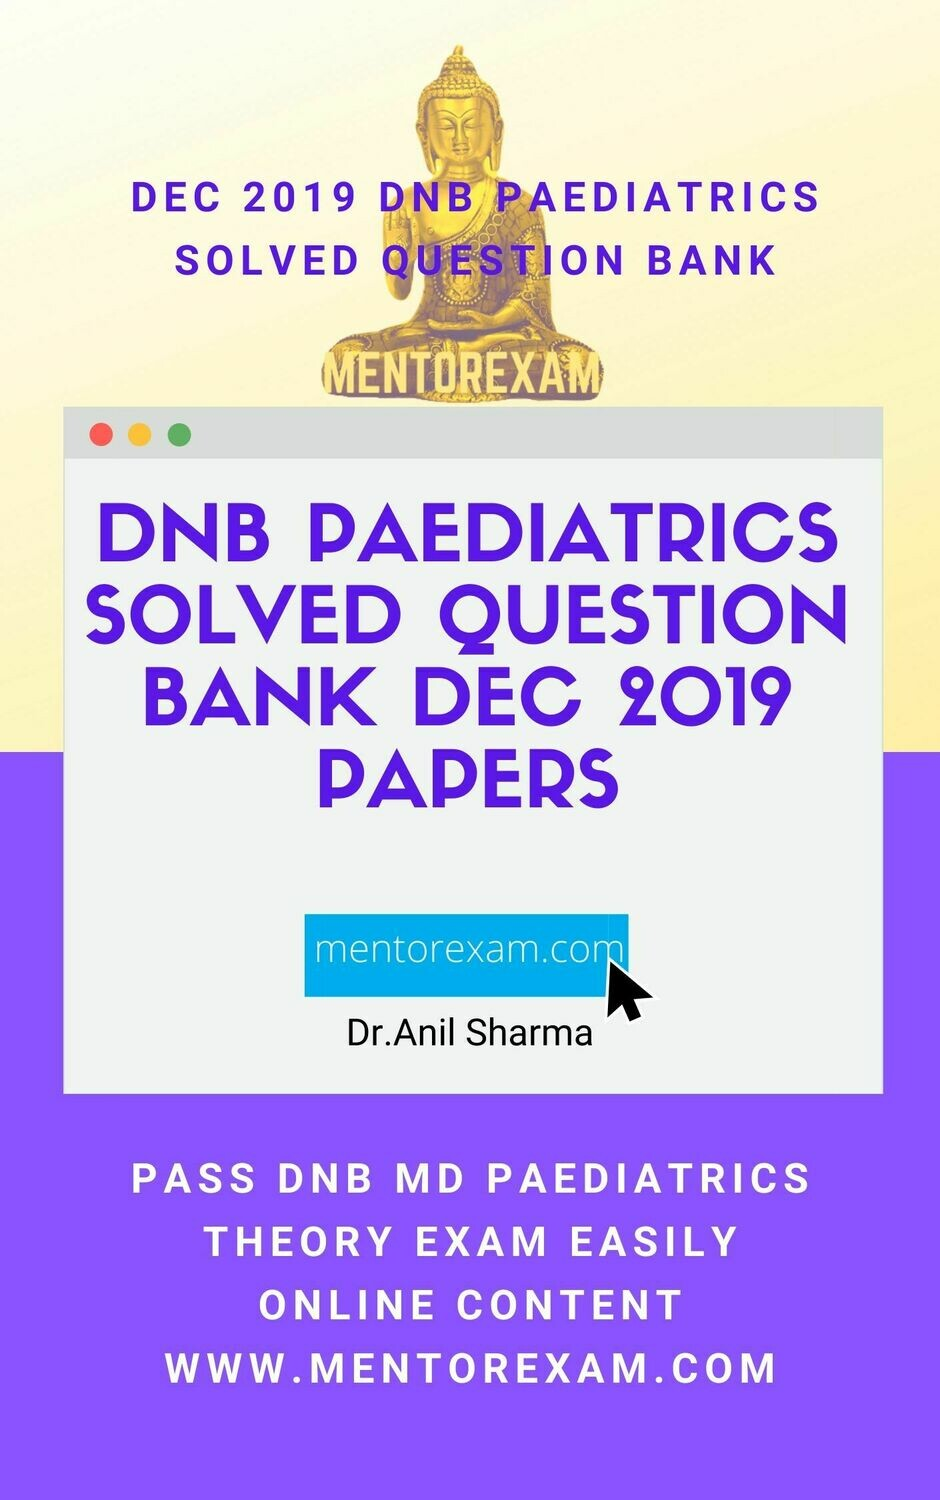 DNB Paediatrics Solved Question papers december 2019